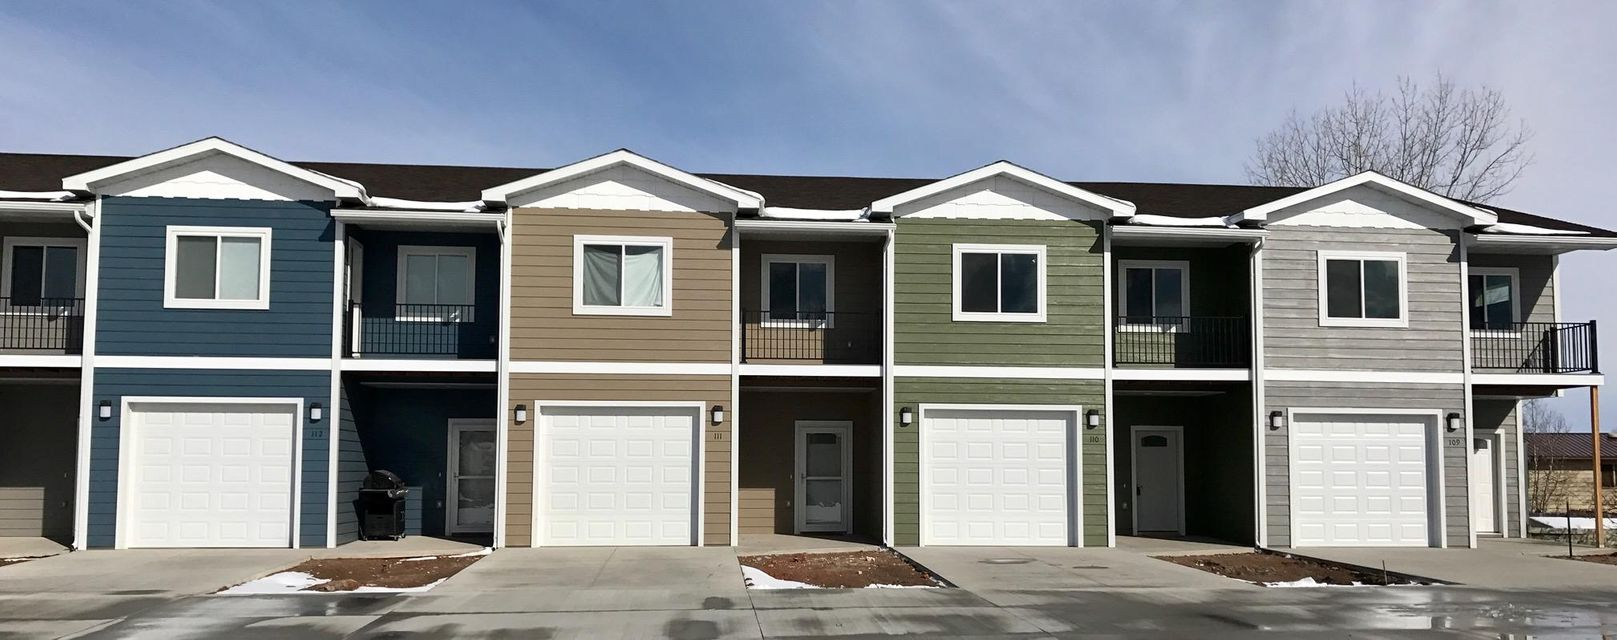 103 Trails West Circle,Ranchester,Wyoming 82839,3 Bedrooms Bedrooms,2.5 BathroomsBathrooms,Residential,Trails West,18-785